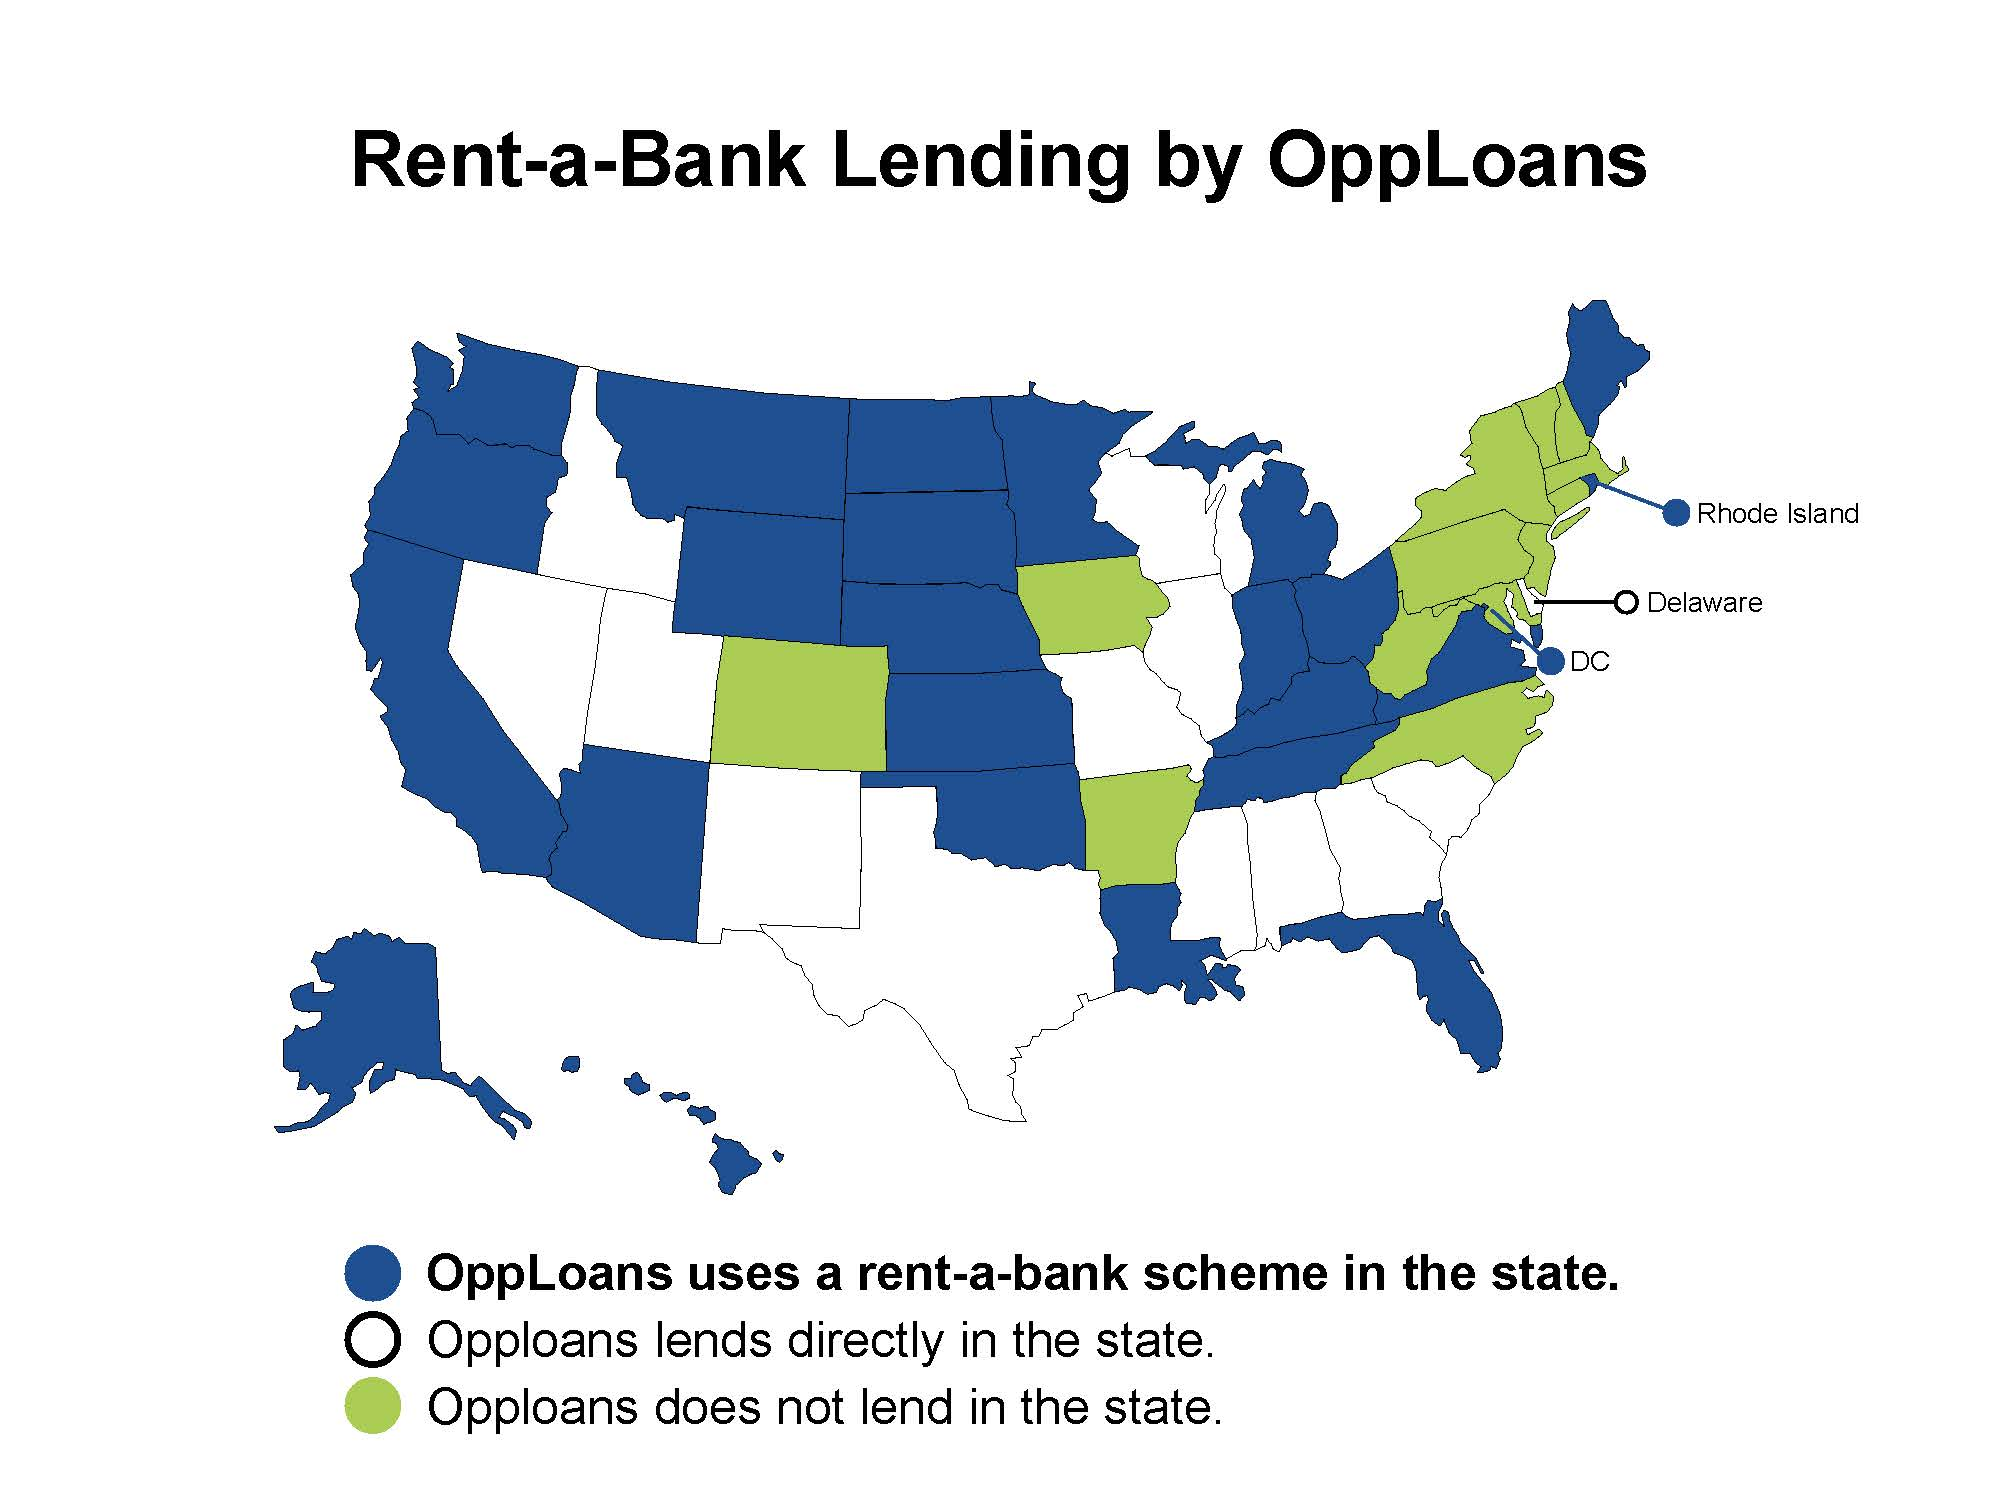 Map of the U.S. in which the states that Opploans uses rent-a-bank schemes to avoid state rate caps are colored in blue. States in which Opploans directly lends are white, while the states in which the organization does not lend are in green.